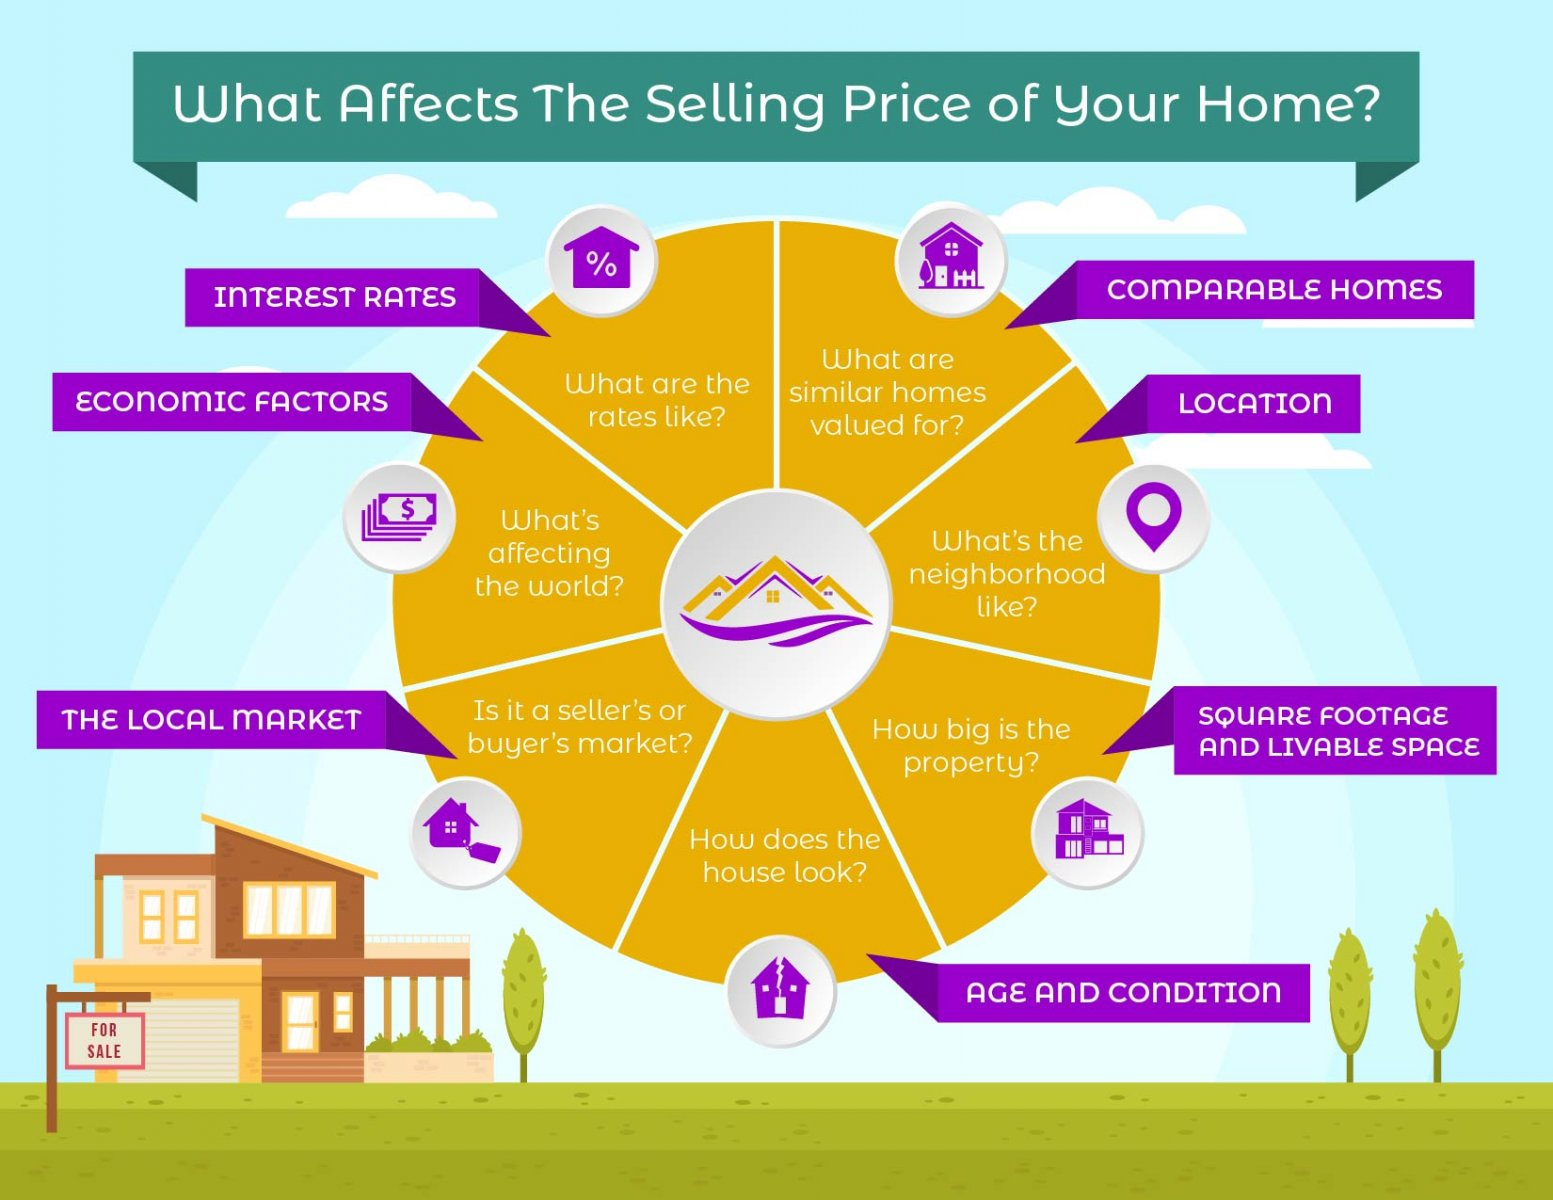 What Affects The Selling Price of Your Home?